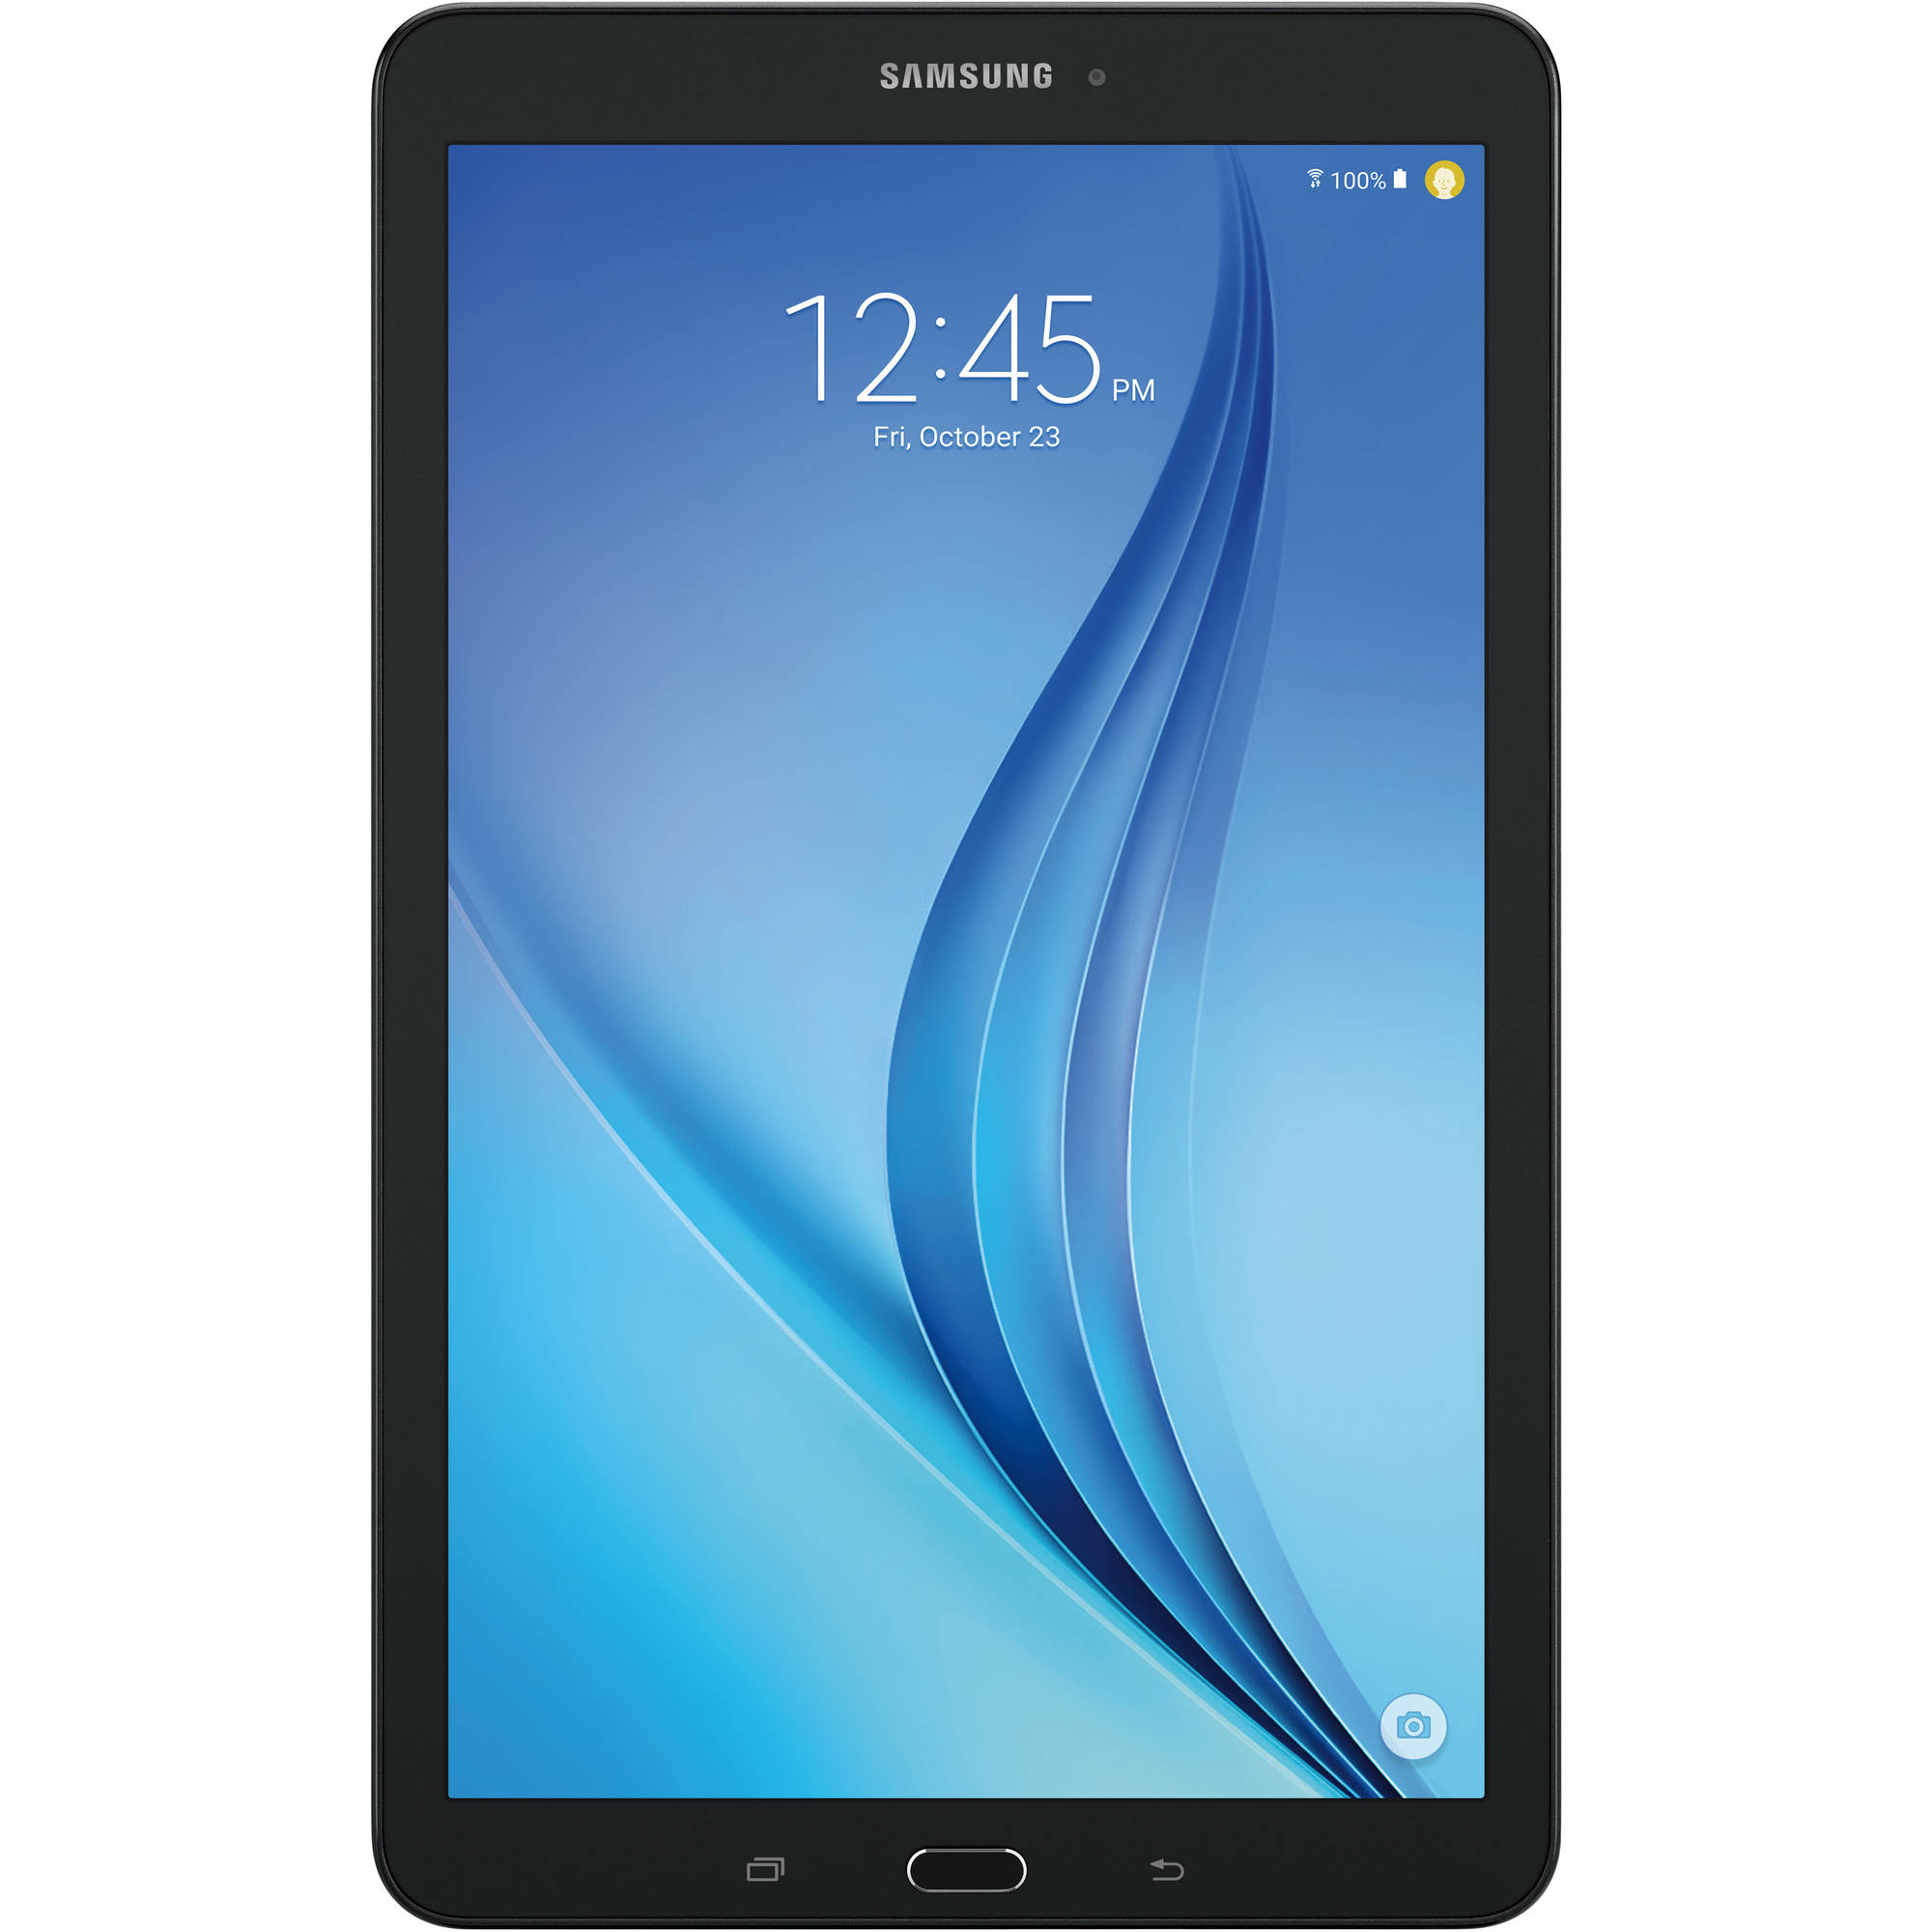 "Samsung Galaxy Tab E with WiFi 9.6"" Touchscreen Tablet PC Featuring Android 5.1 (Lollipop) Operating System"